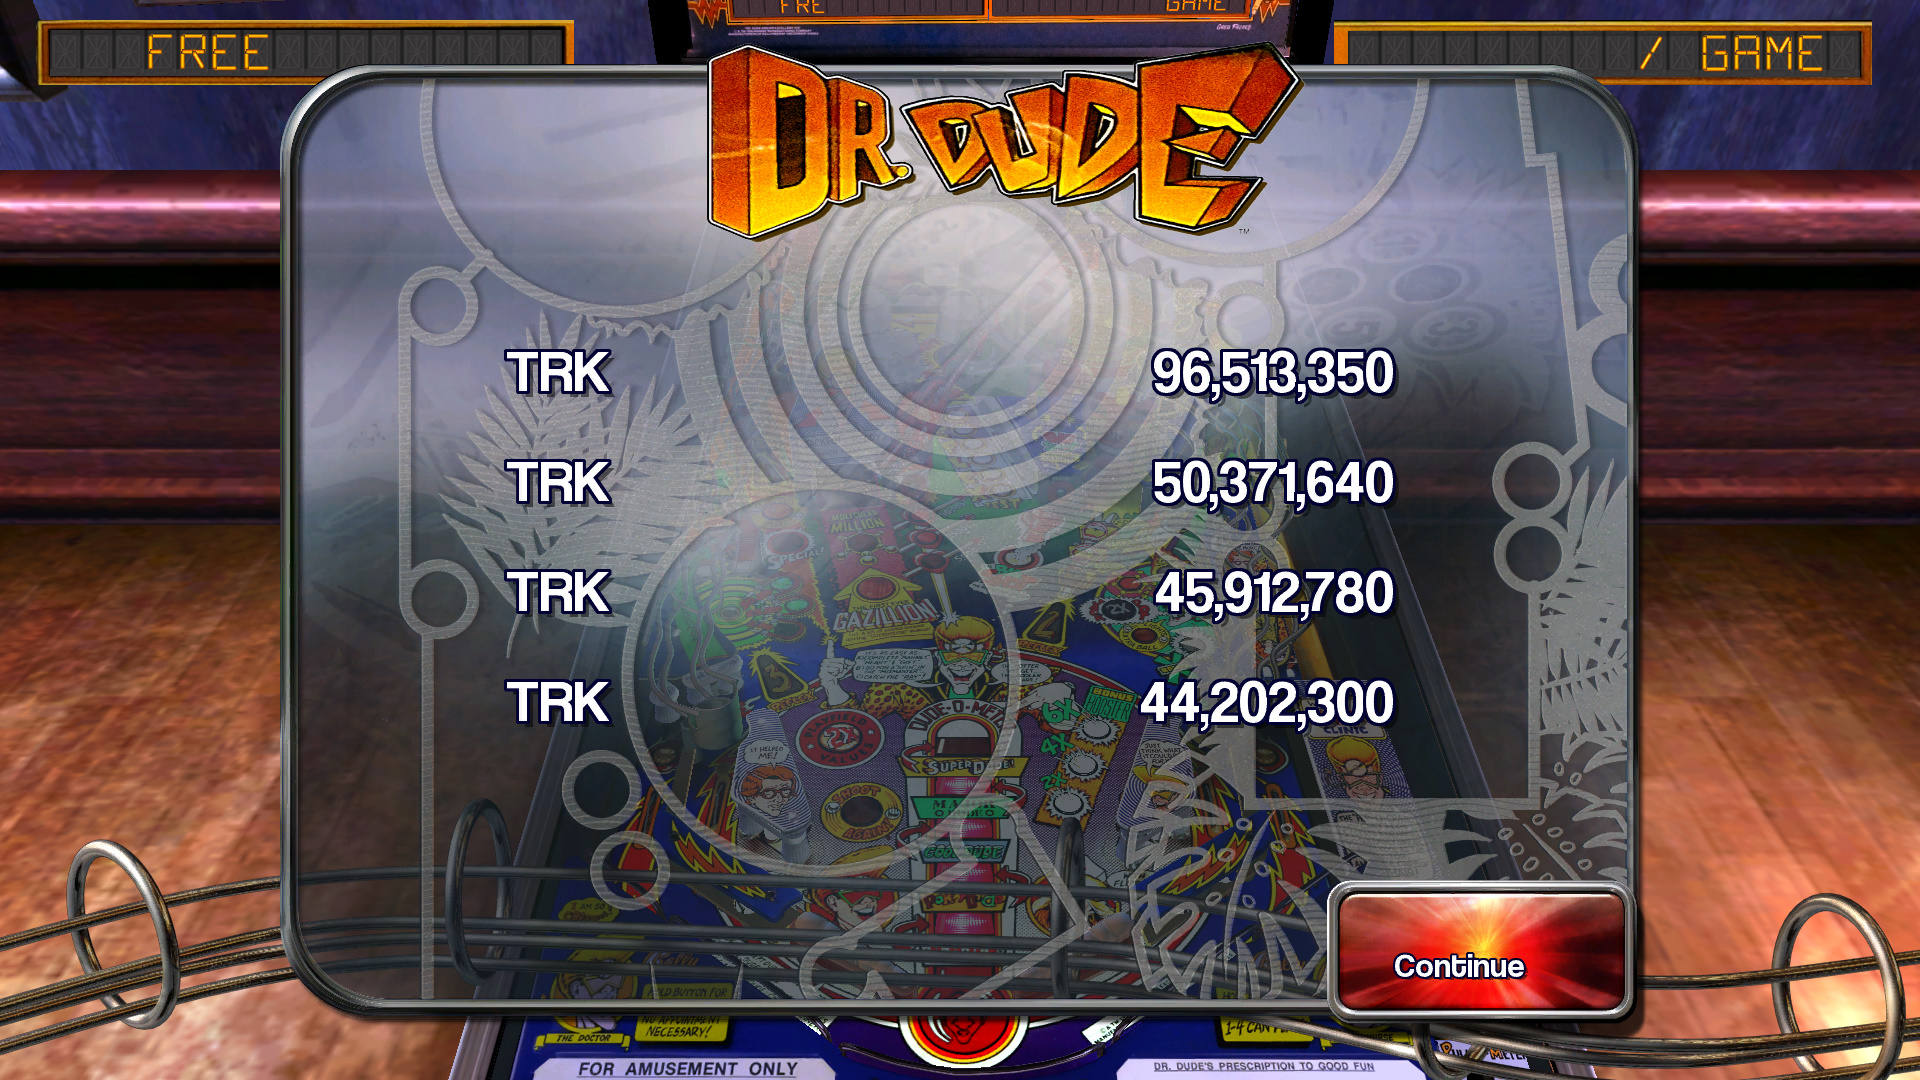 TheTrickster: Pinball Arcade: Dr. Dude (PC) 96,513,350 points on 2015-10-10 04:10:07